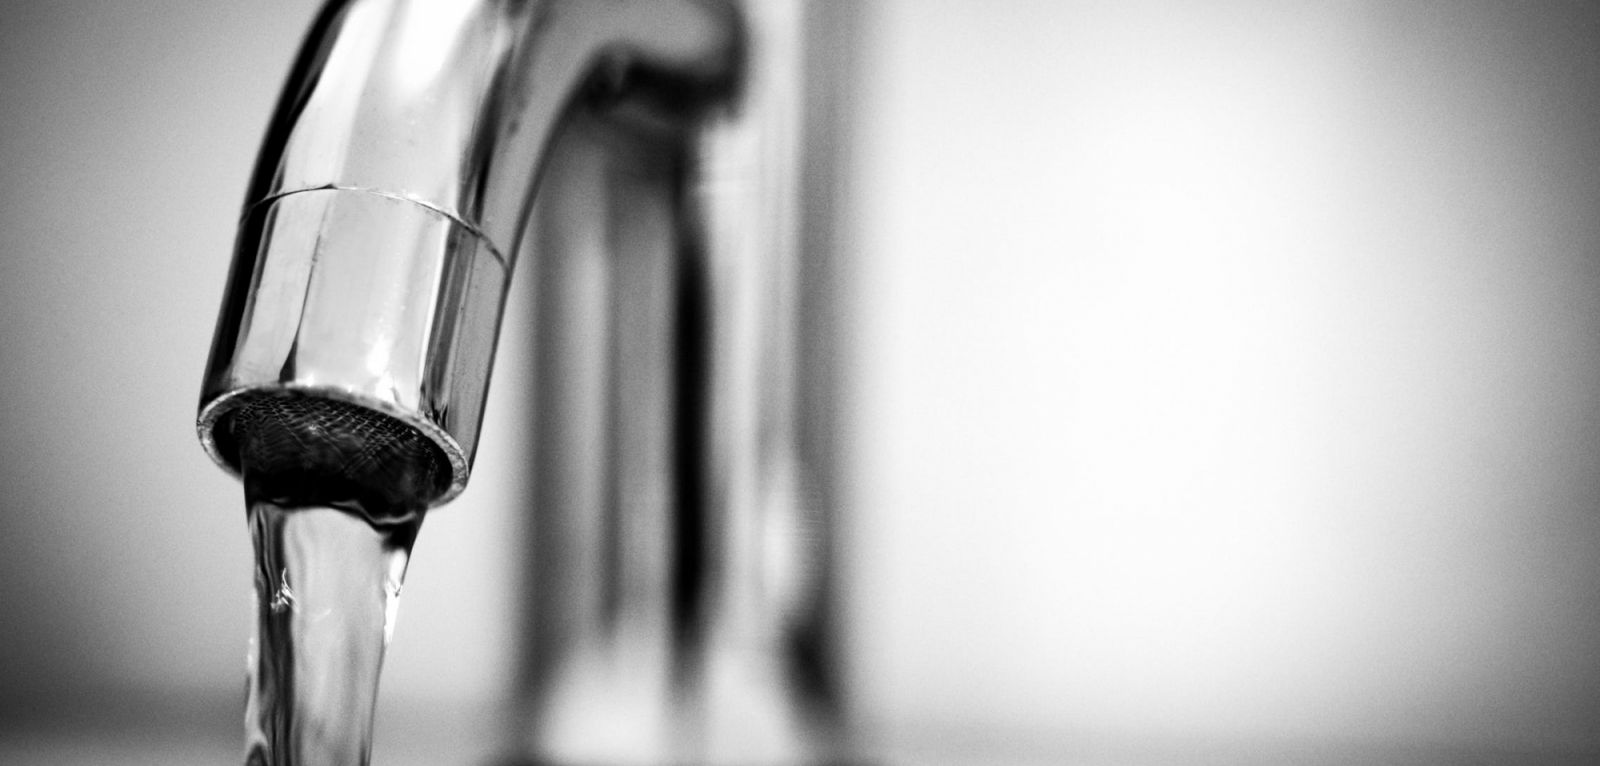 black and white water tap